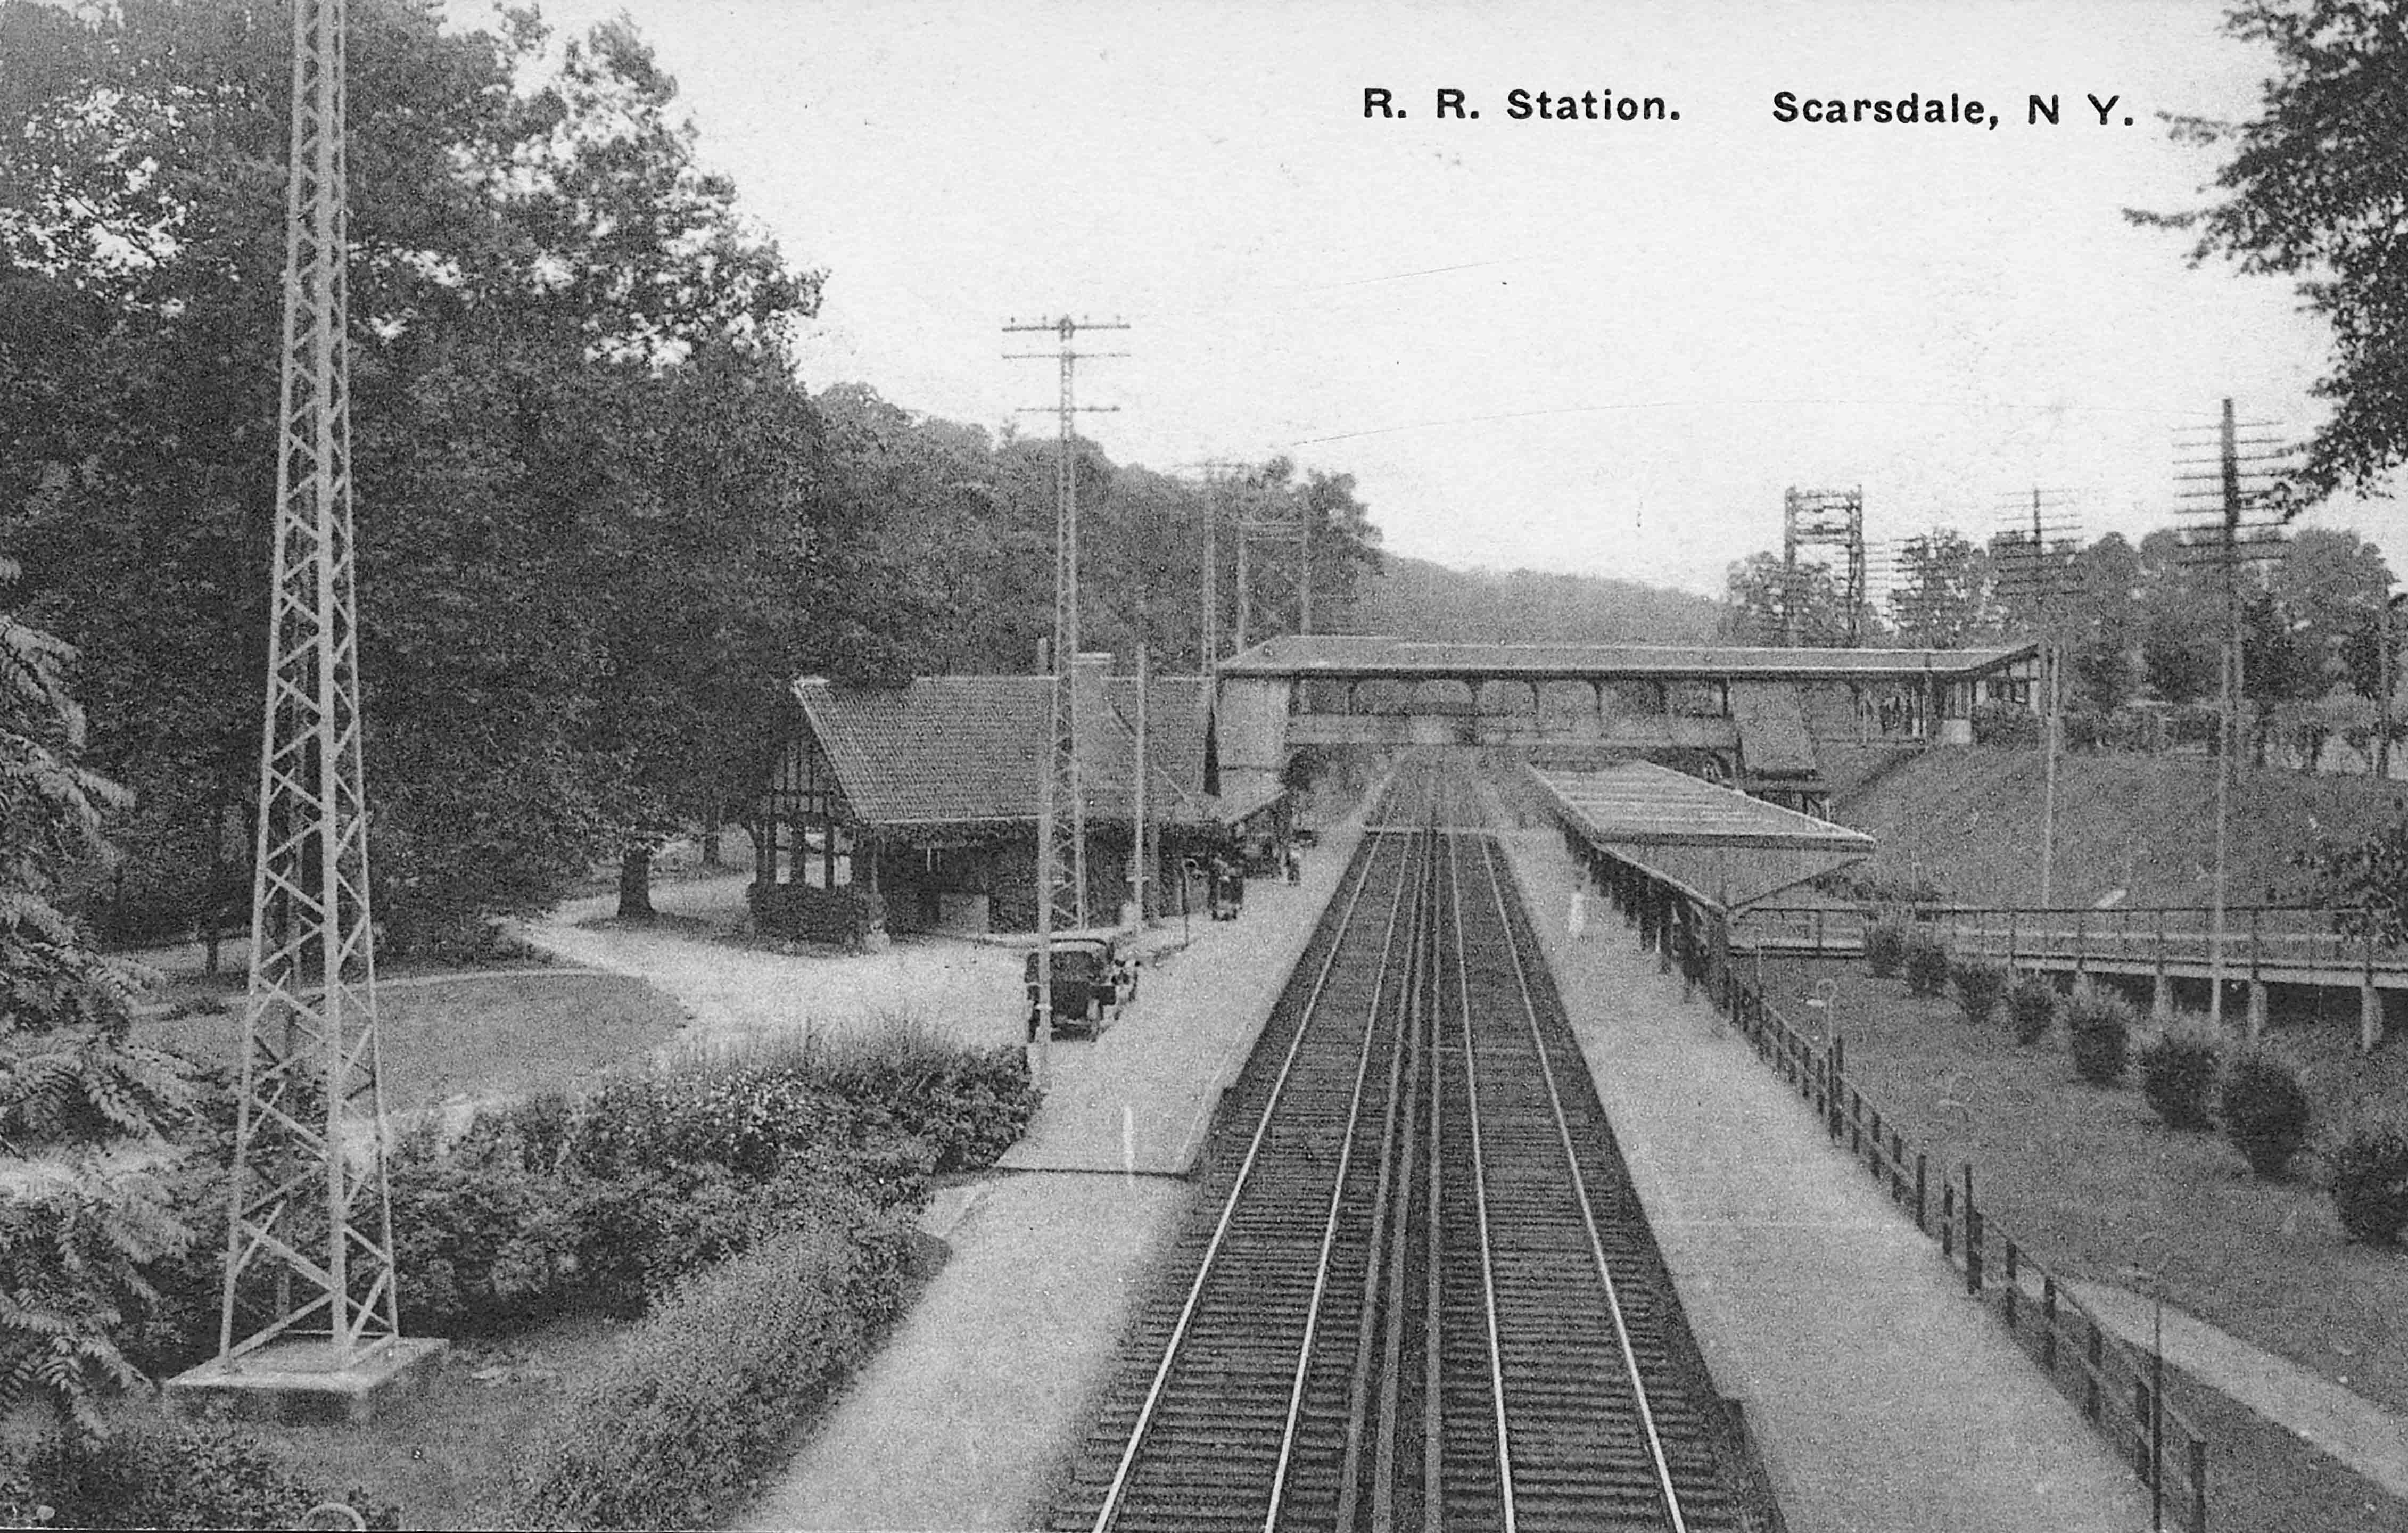 An early-20th century postcard of the Scarsdale Railroad Station.